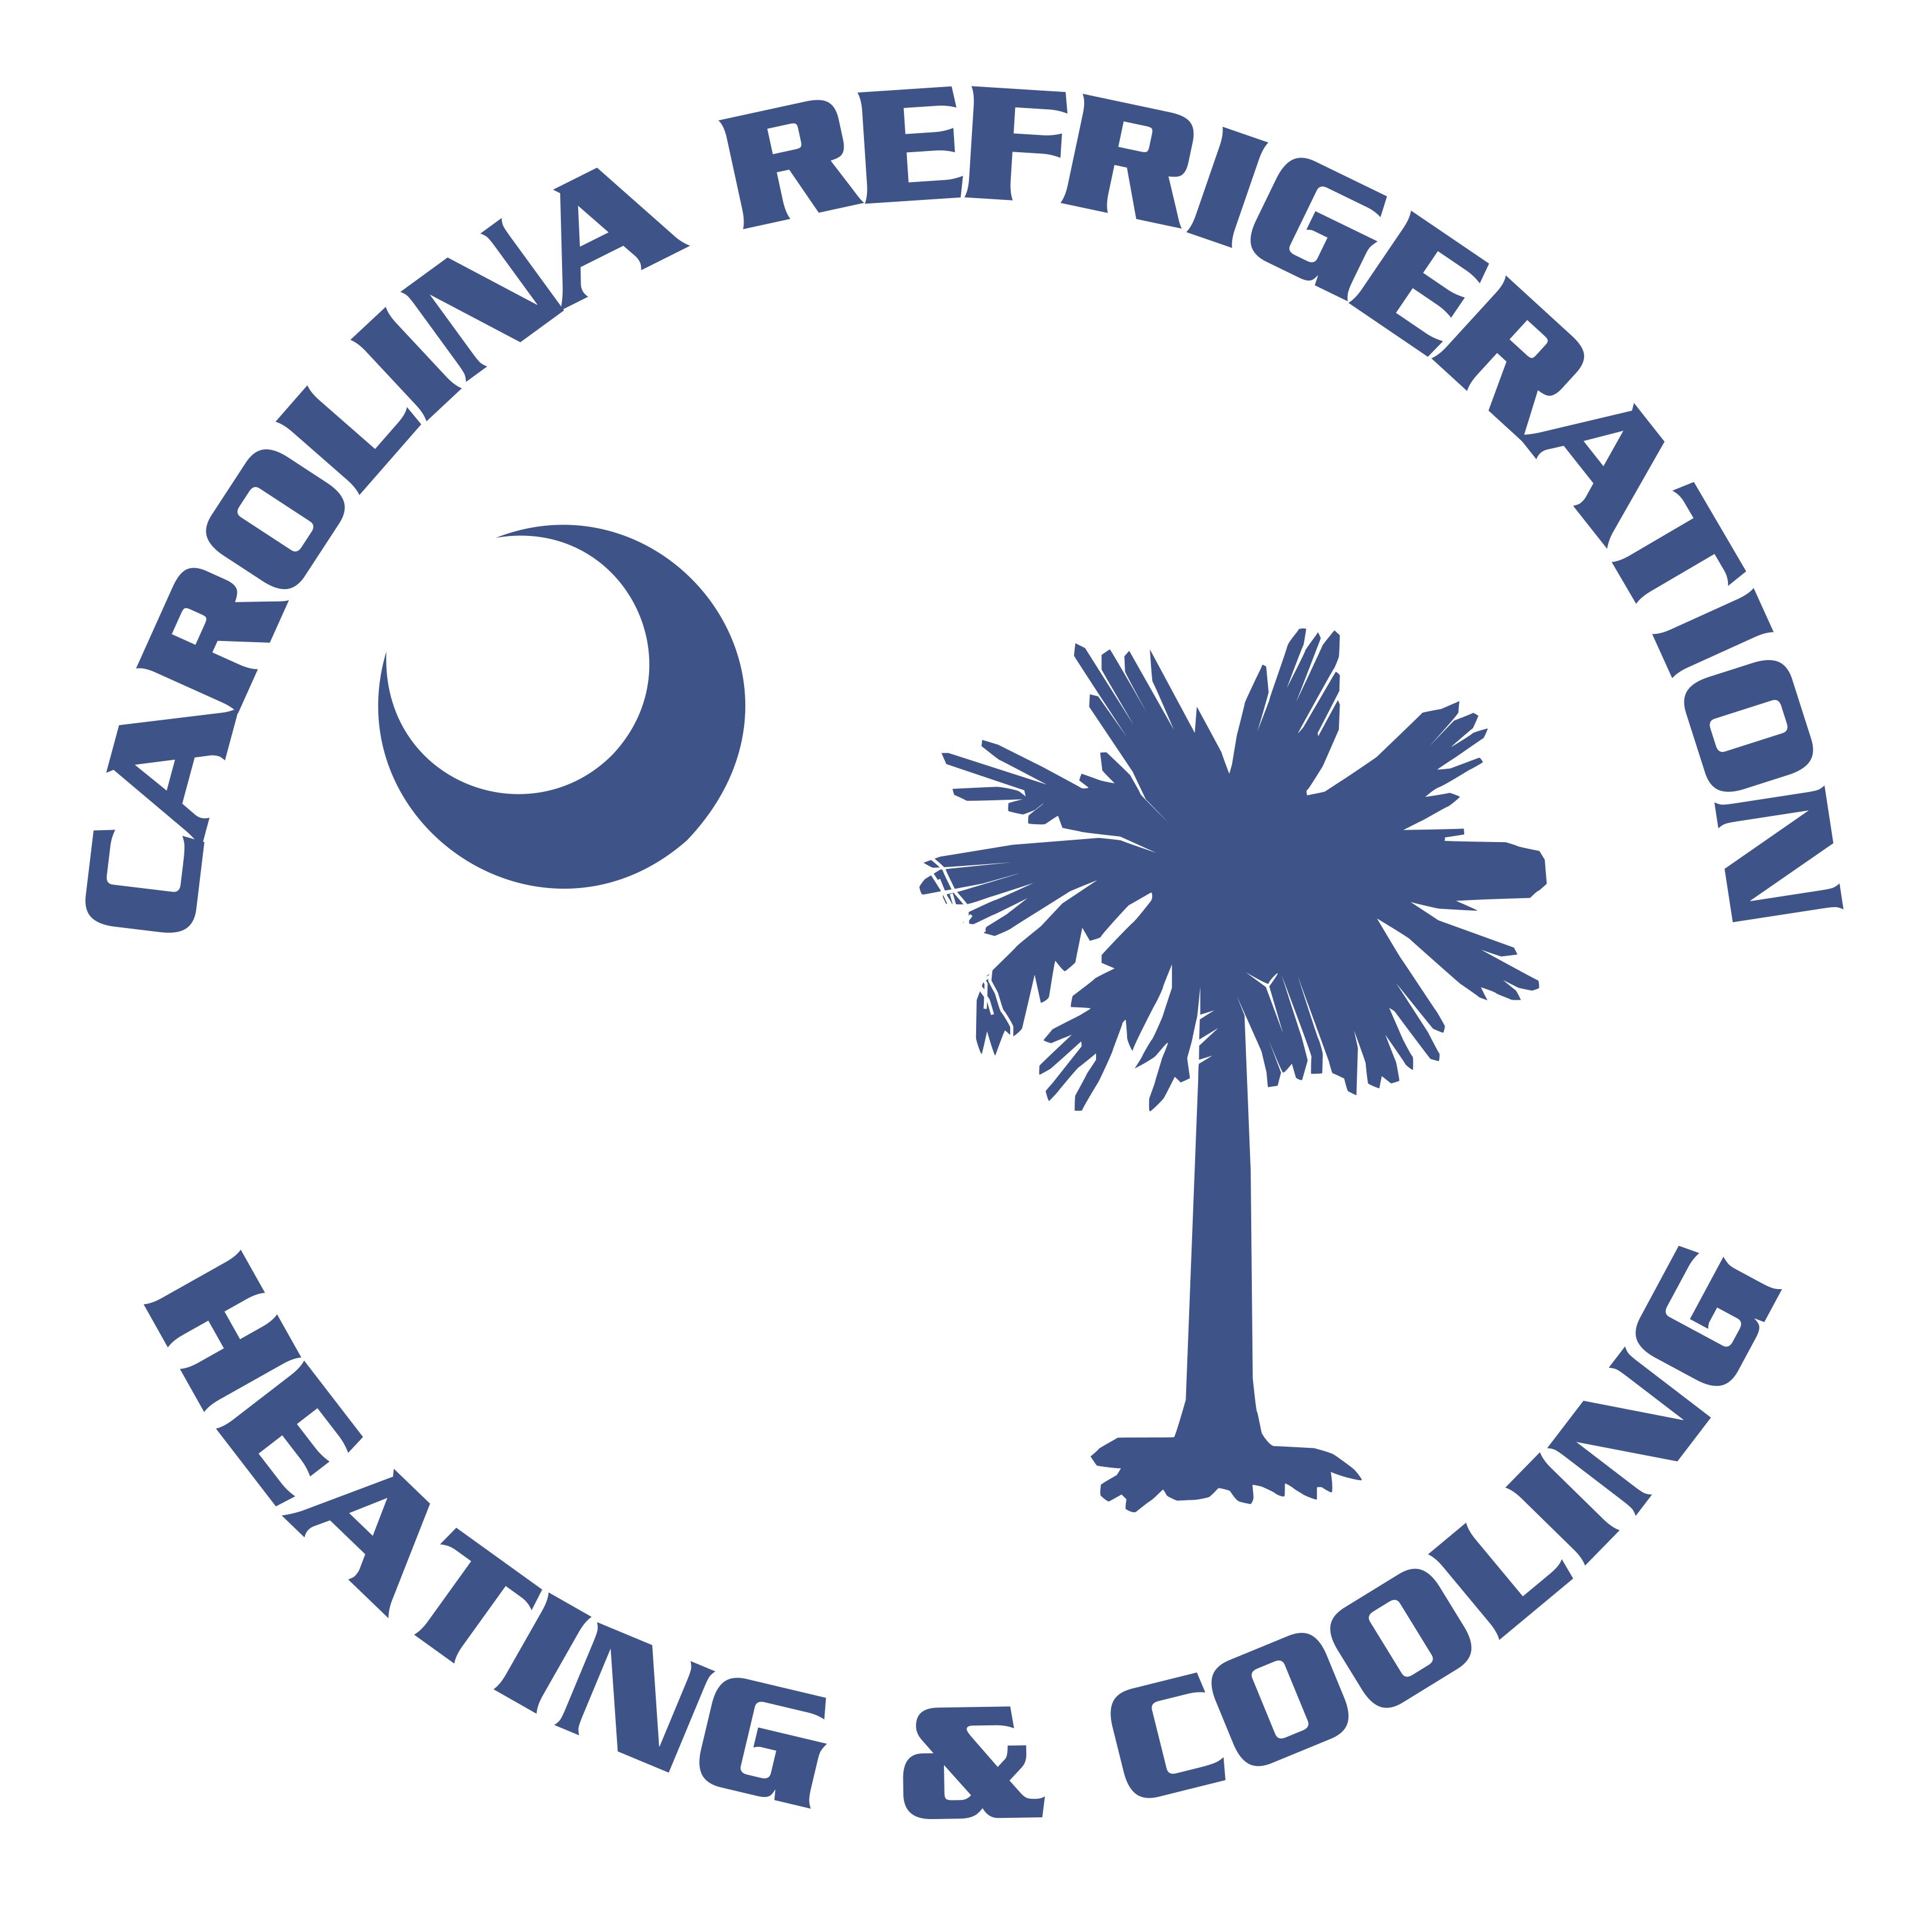 Comfort heating and cooling sun clipart clipart freeuse download HVAC Blog: Rock Hill, SC | Carolina Refrigeration Heating and Cooling clipart freeuse download